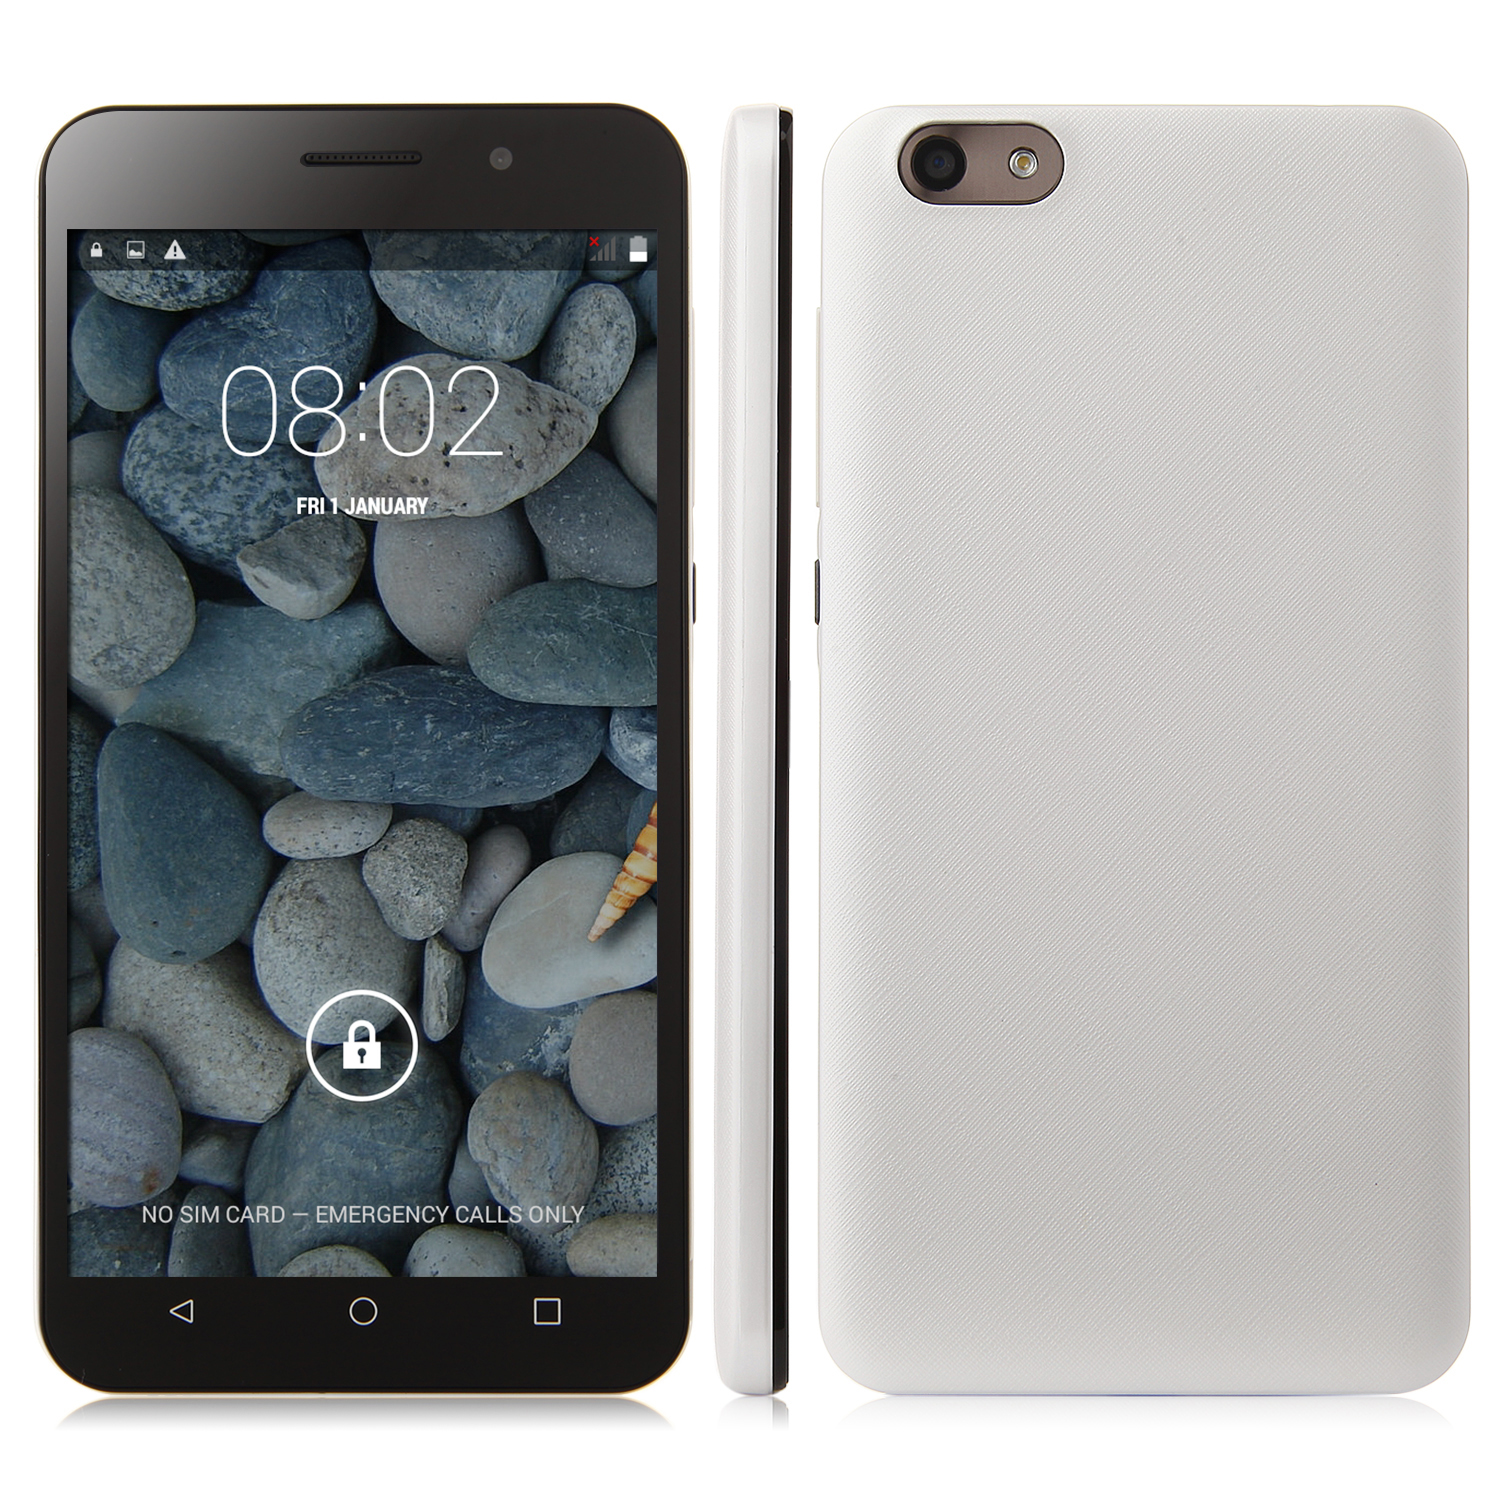 X4 Smartphone Android 4.4 MTK6582 Quad Core 5.5 Inch QHD Screen 512MB 4GB White